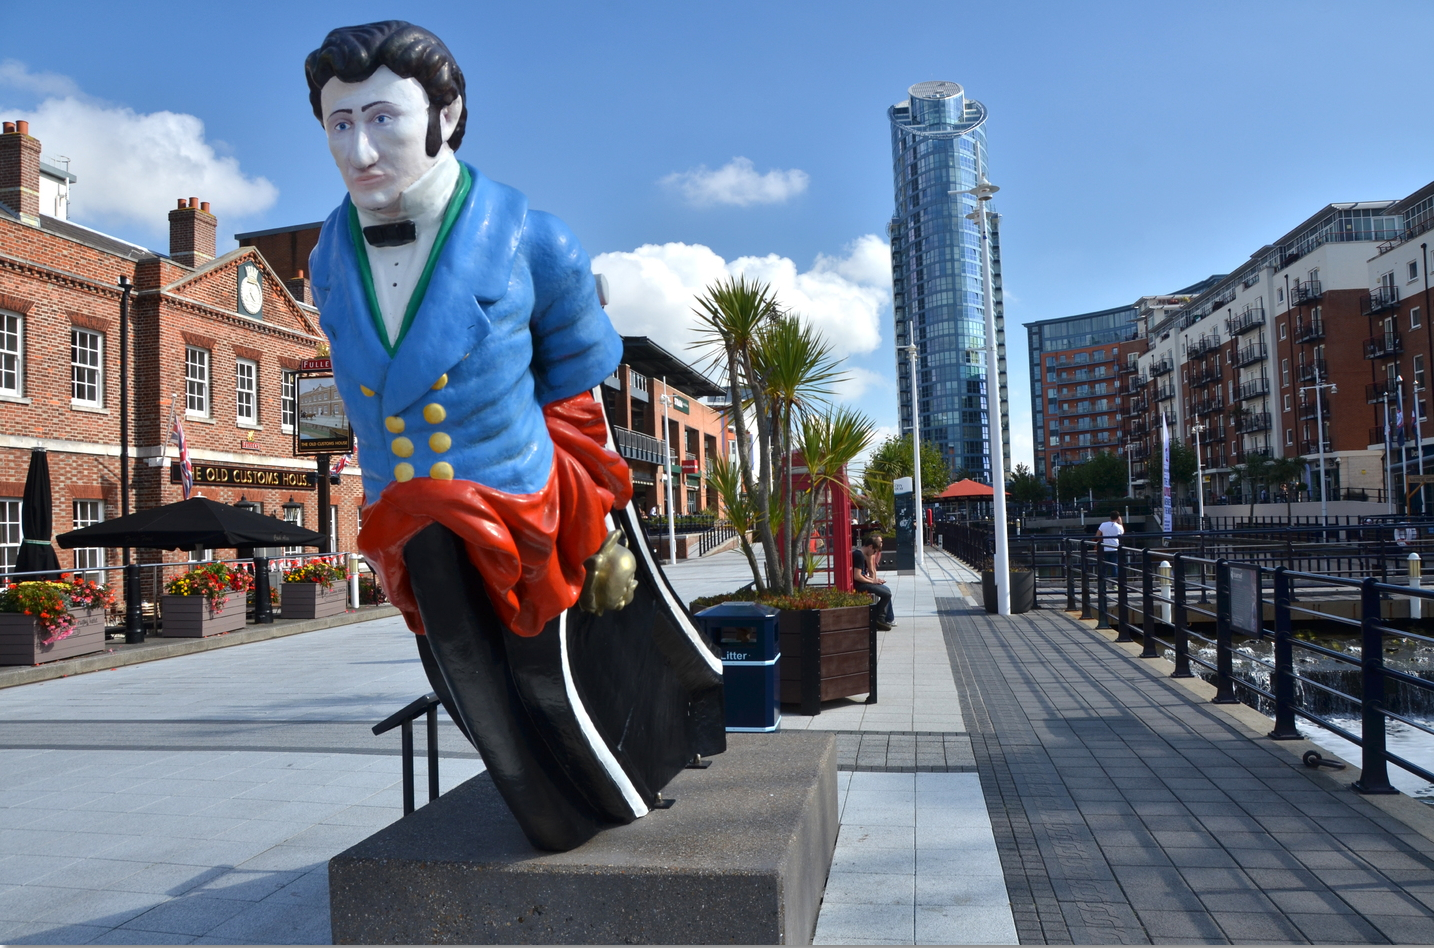 Figurehead depicting the Hon George Vernon from the fourth HMS Vernon, at Gunwharf Quays (formerly HMS VERNON)